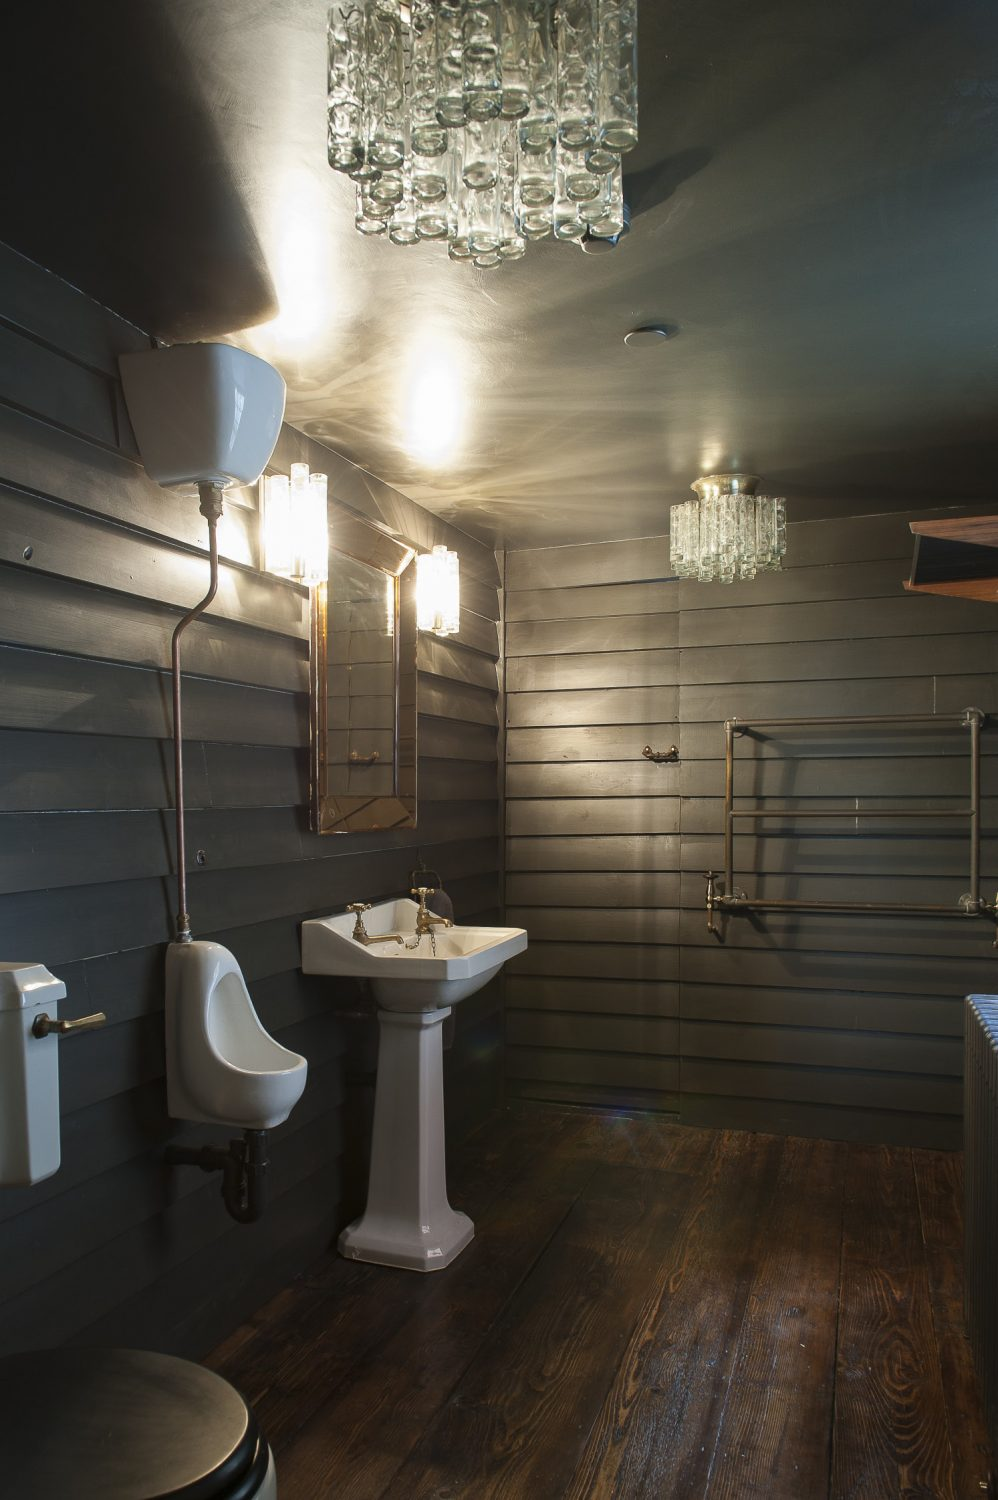 The Net Hut Cloakroom pays tribute to the Old Town fishing community's famous black wooden structures